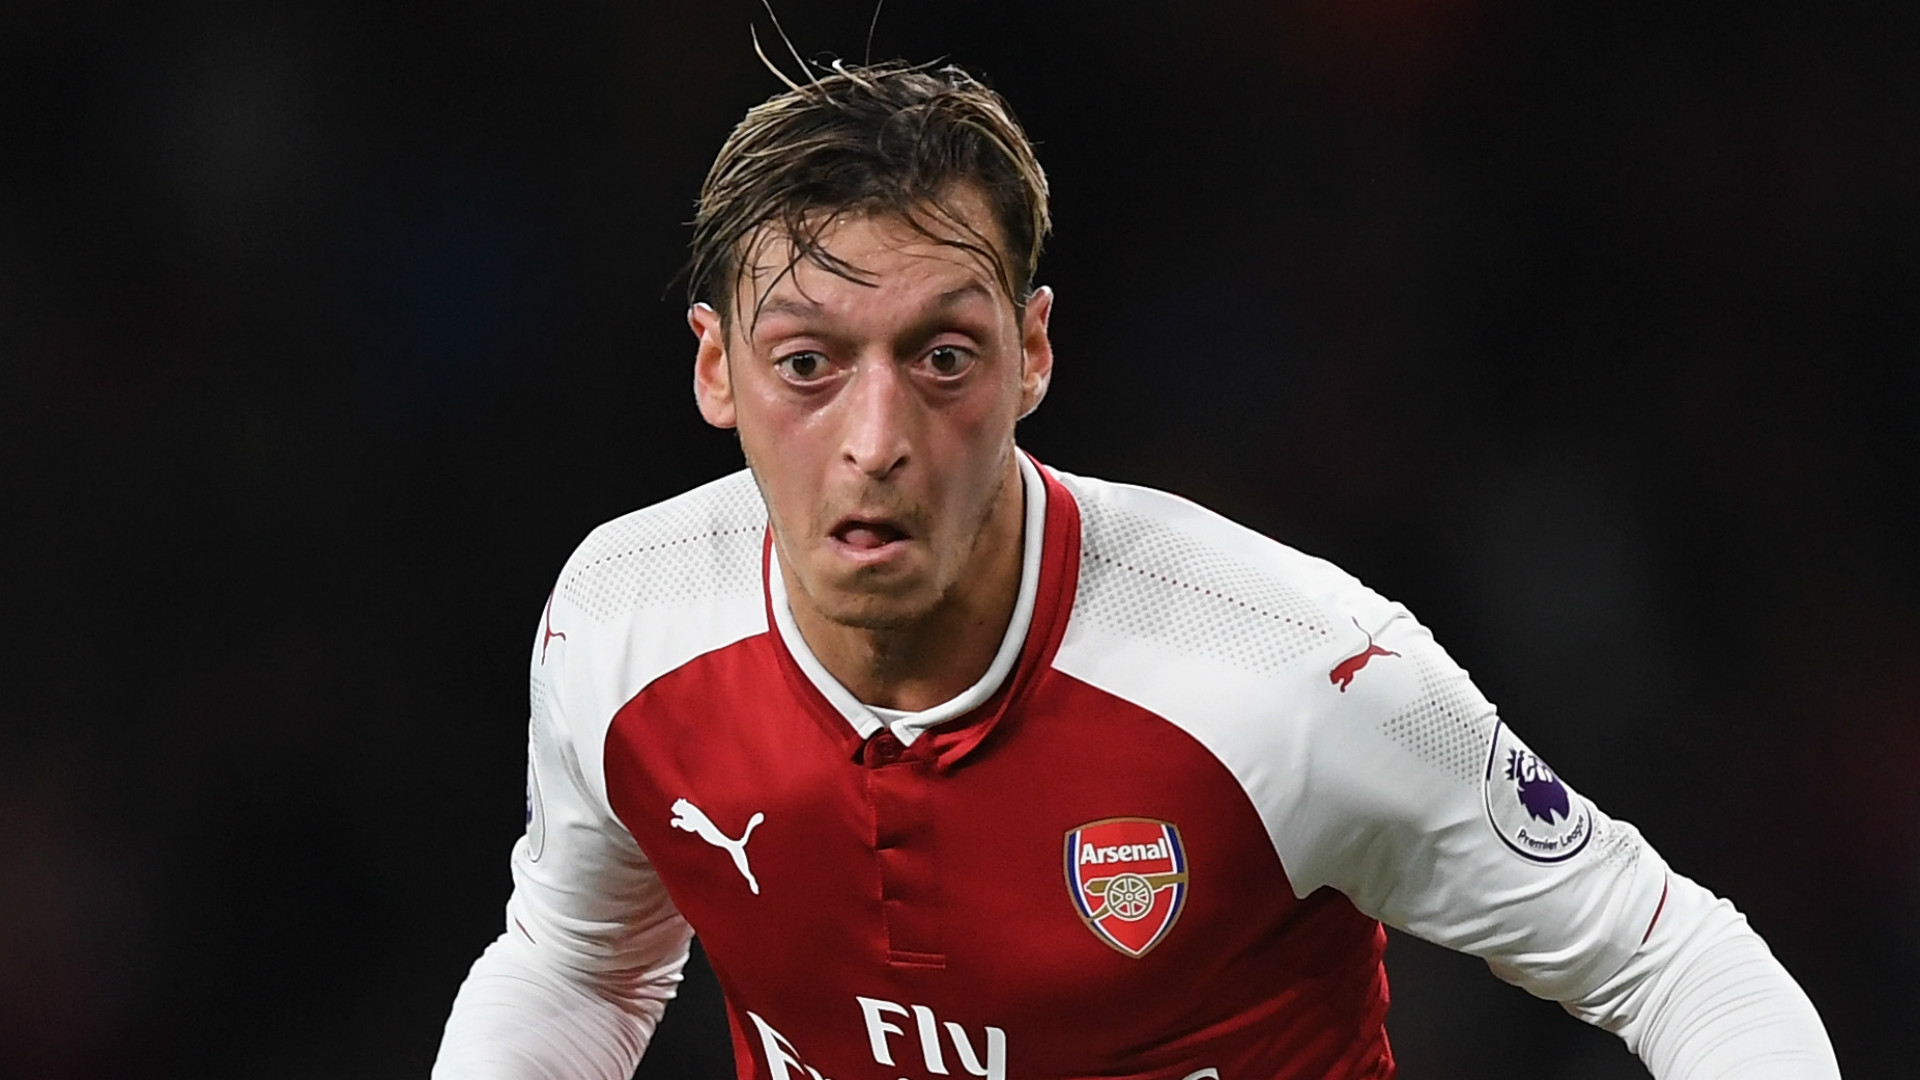 Mesut Ozil Transfer News He has mentally left Arsenal he wants